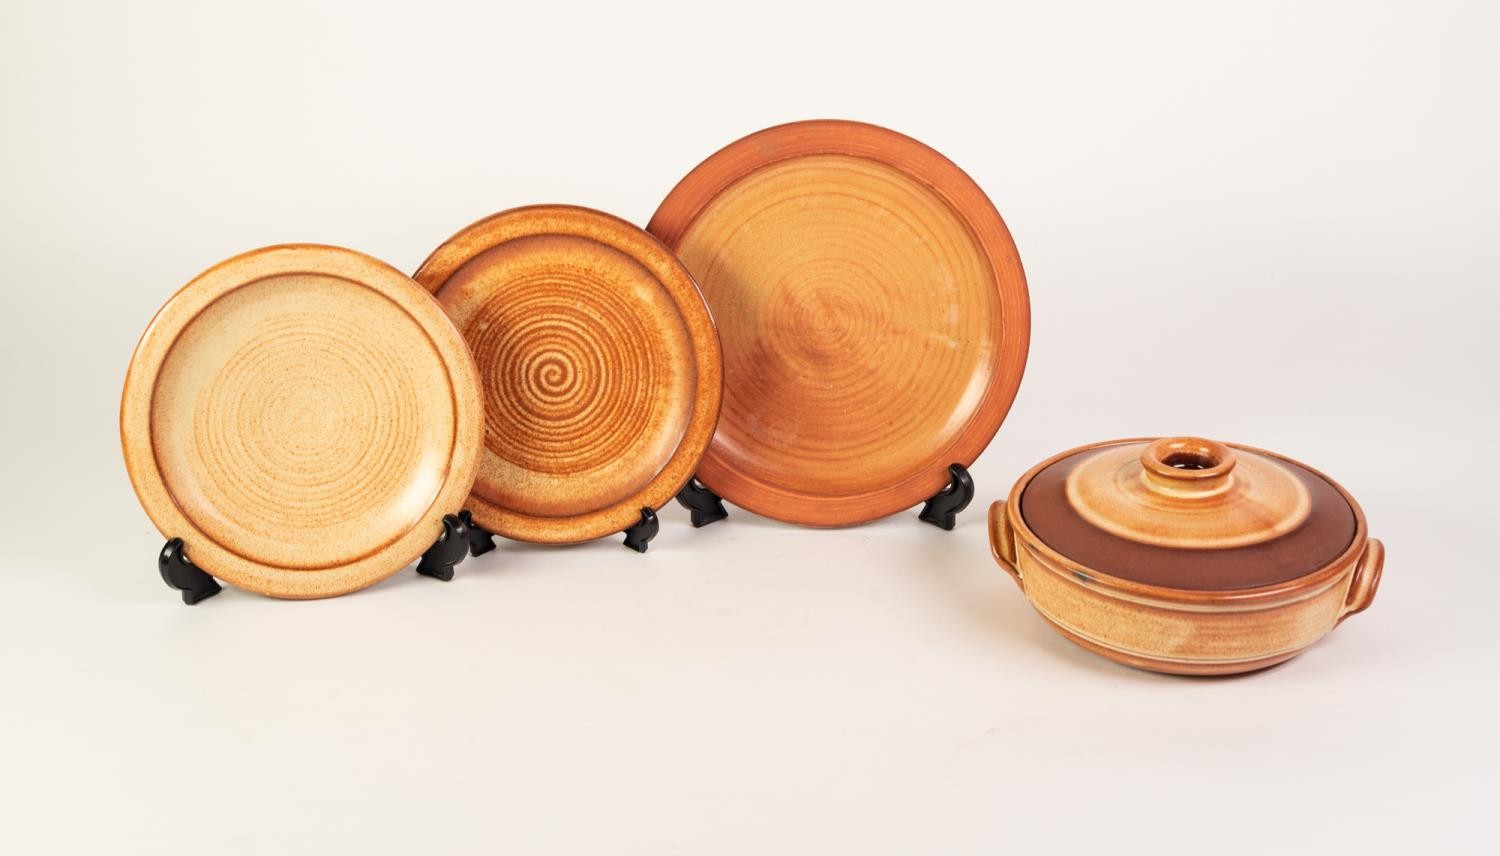 TWENTY ONE DAVID LEACH STYLE POTTERY PLATES IN FOUR SIZES, each with unglazed rims and slightly - Image 2 of 2